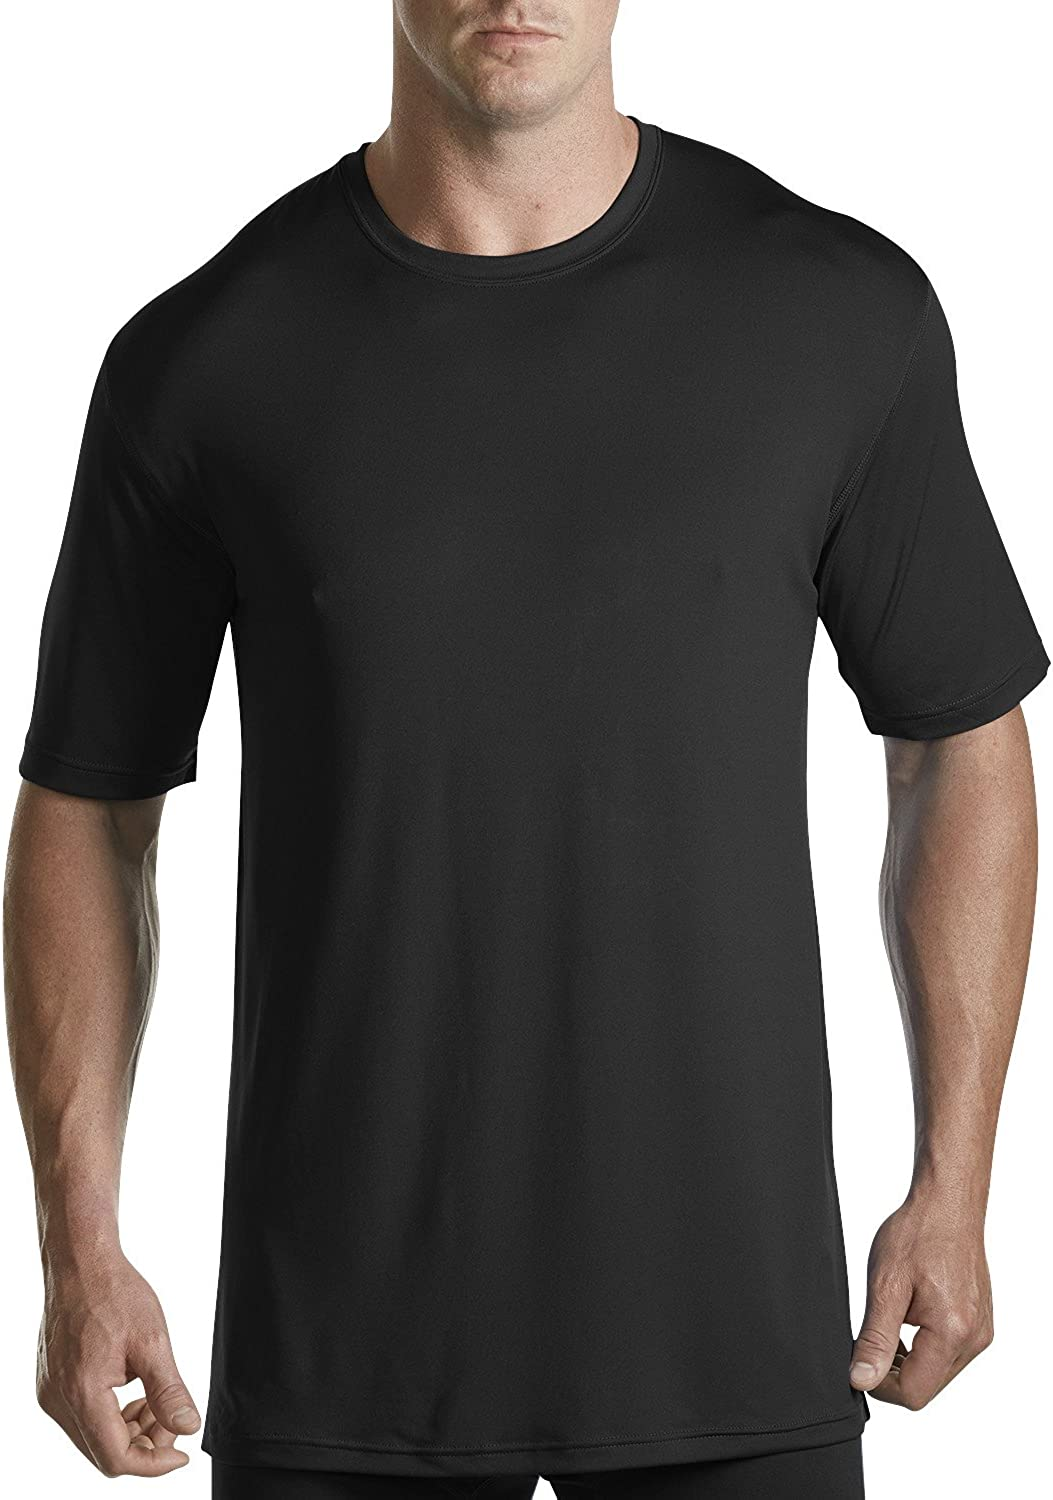 Harbor Max 44% OFF Bay by DXL Big Crewneck Free shipping Tall Performance T-Shirt and